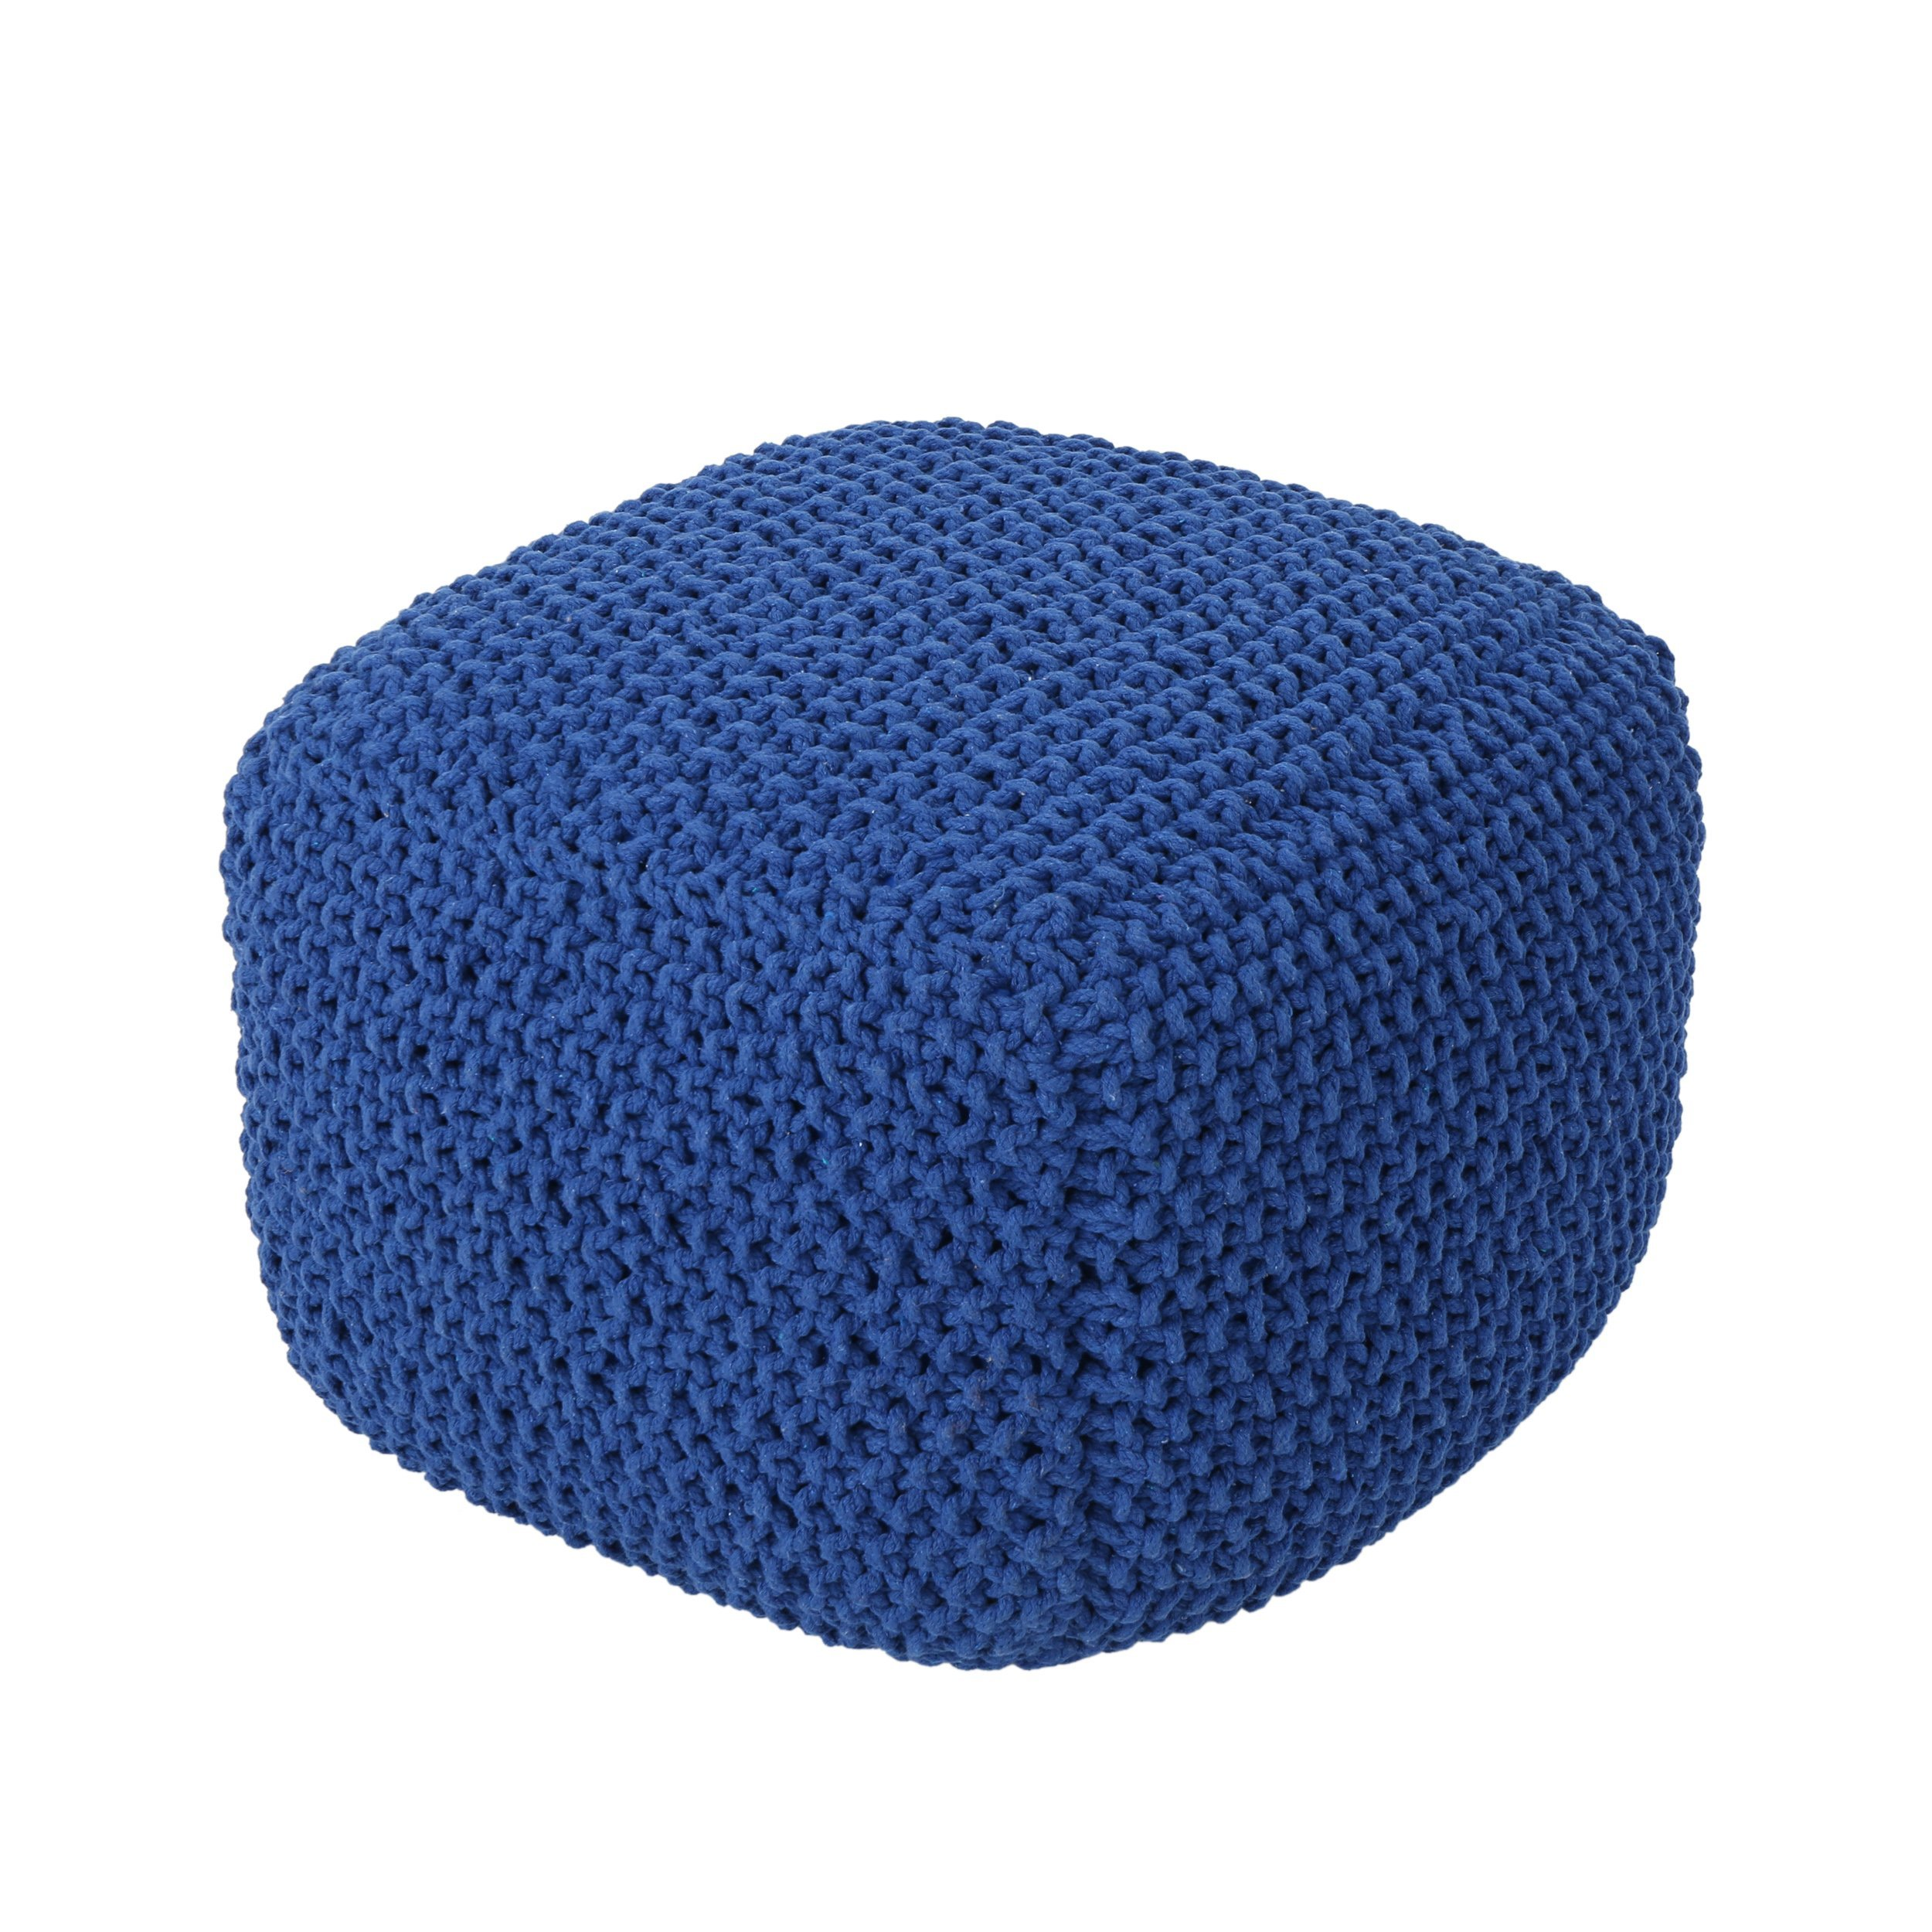 Knox Knitted Cotton Pouf, Navy